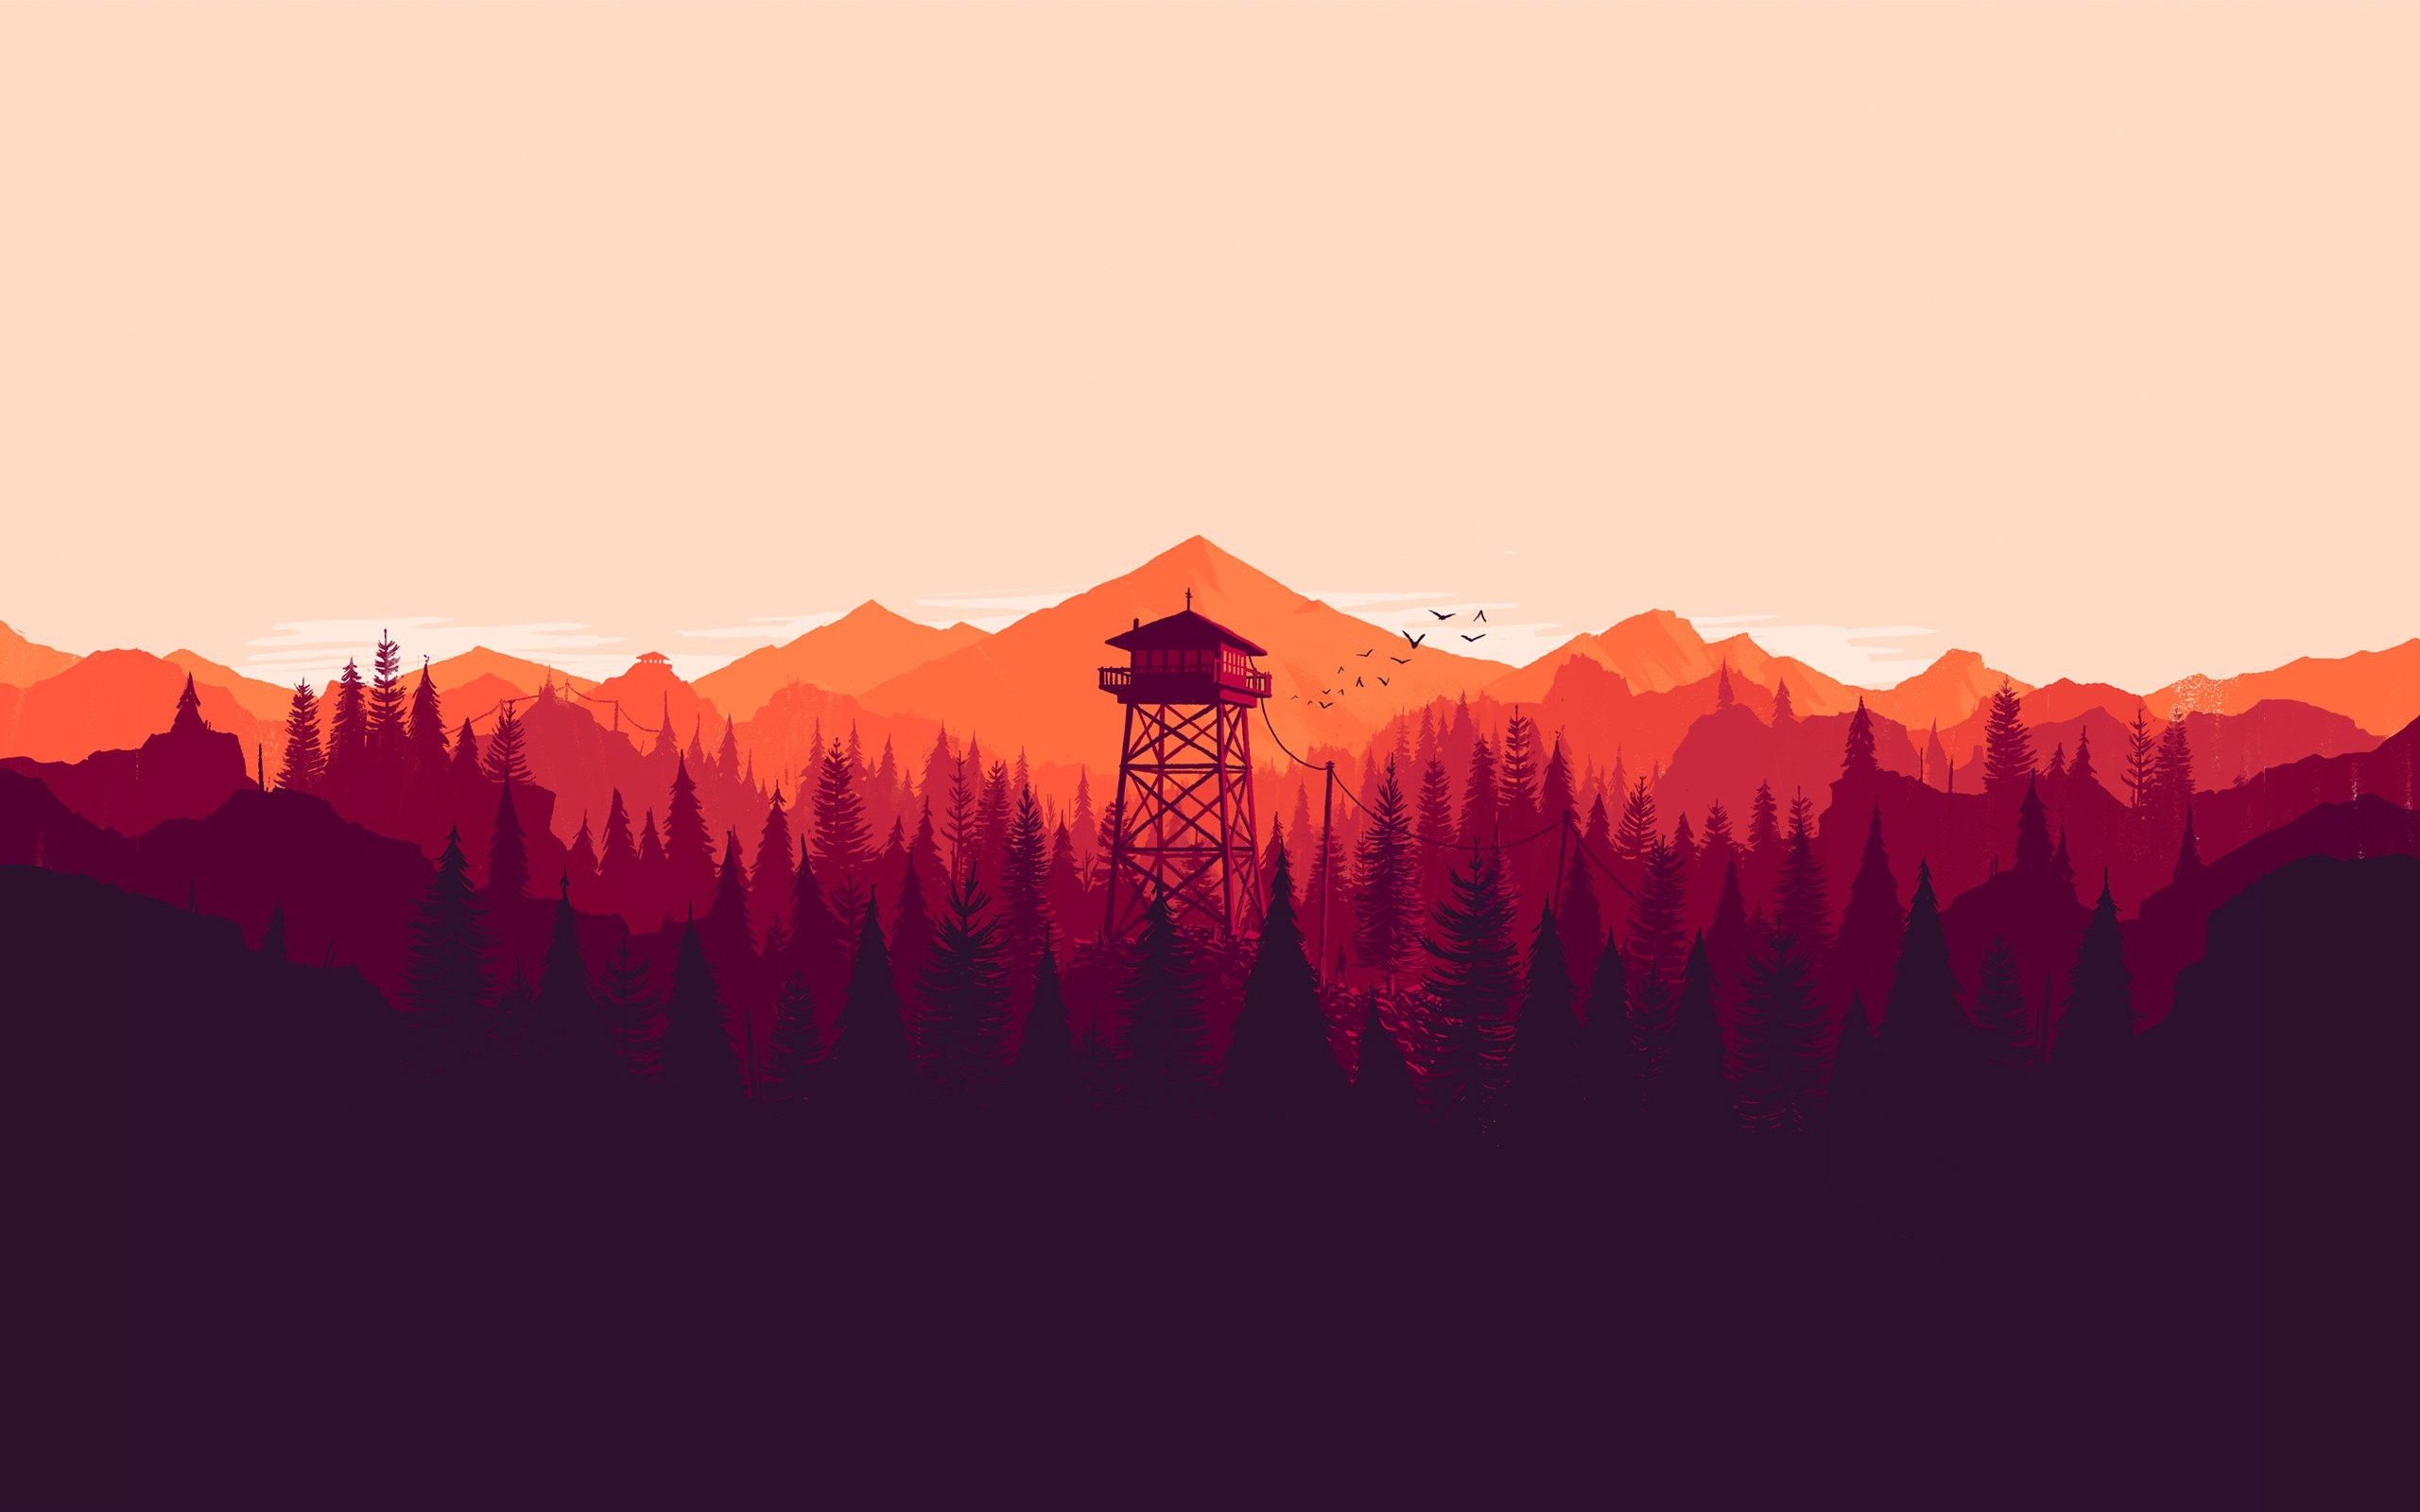 Explore Indie Games, Wall Wallpaper, and more!